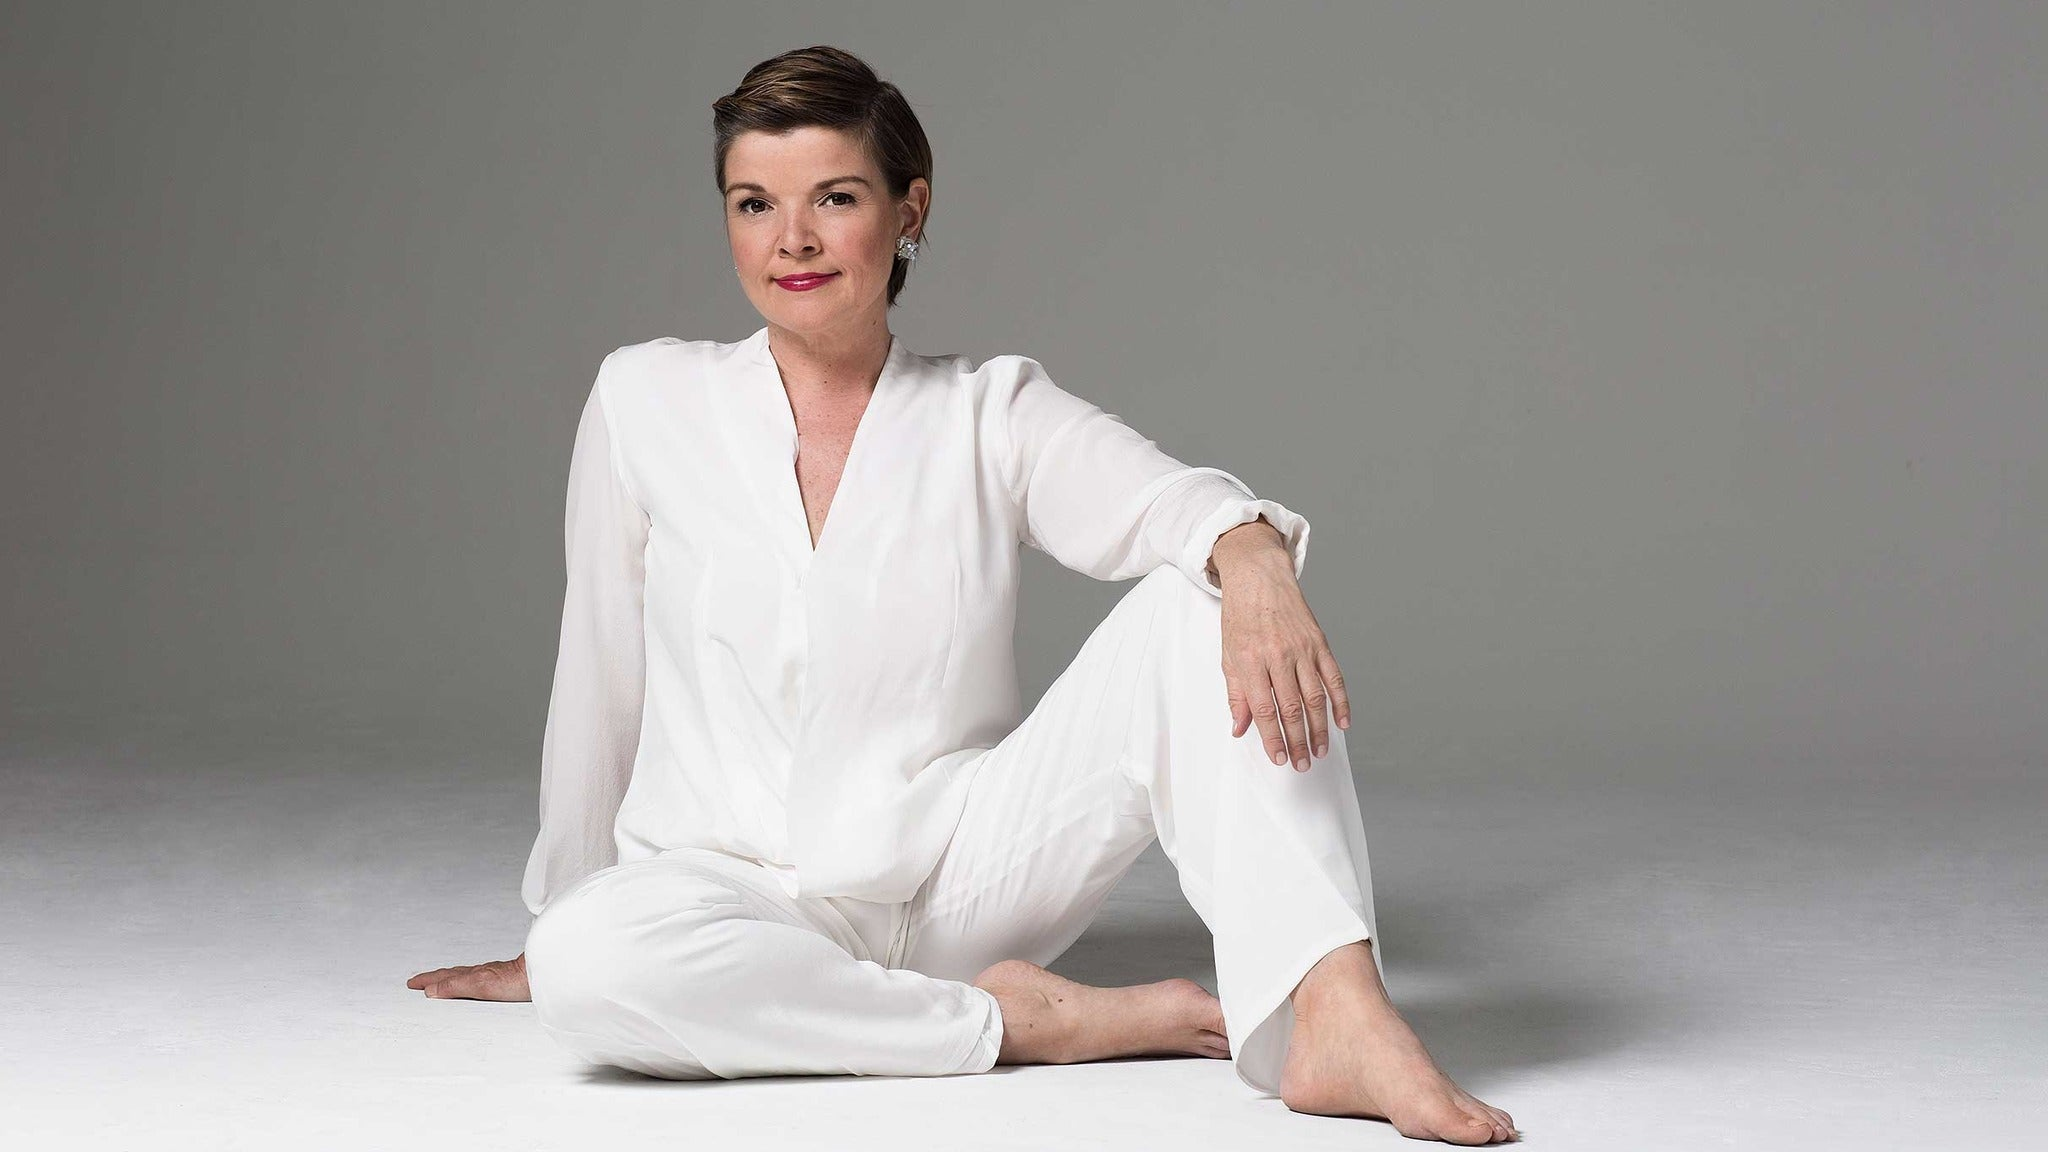 Gold Coast Jazz: Karrin Allyson Trio - Ft Lauderdale, FL 33312